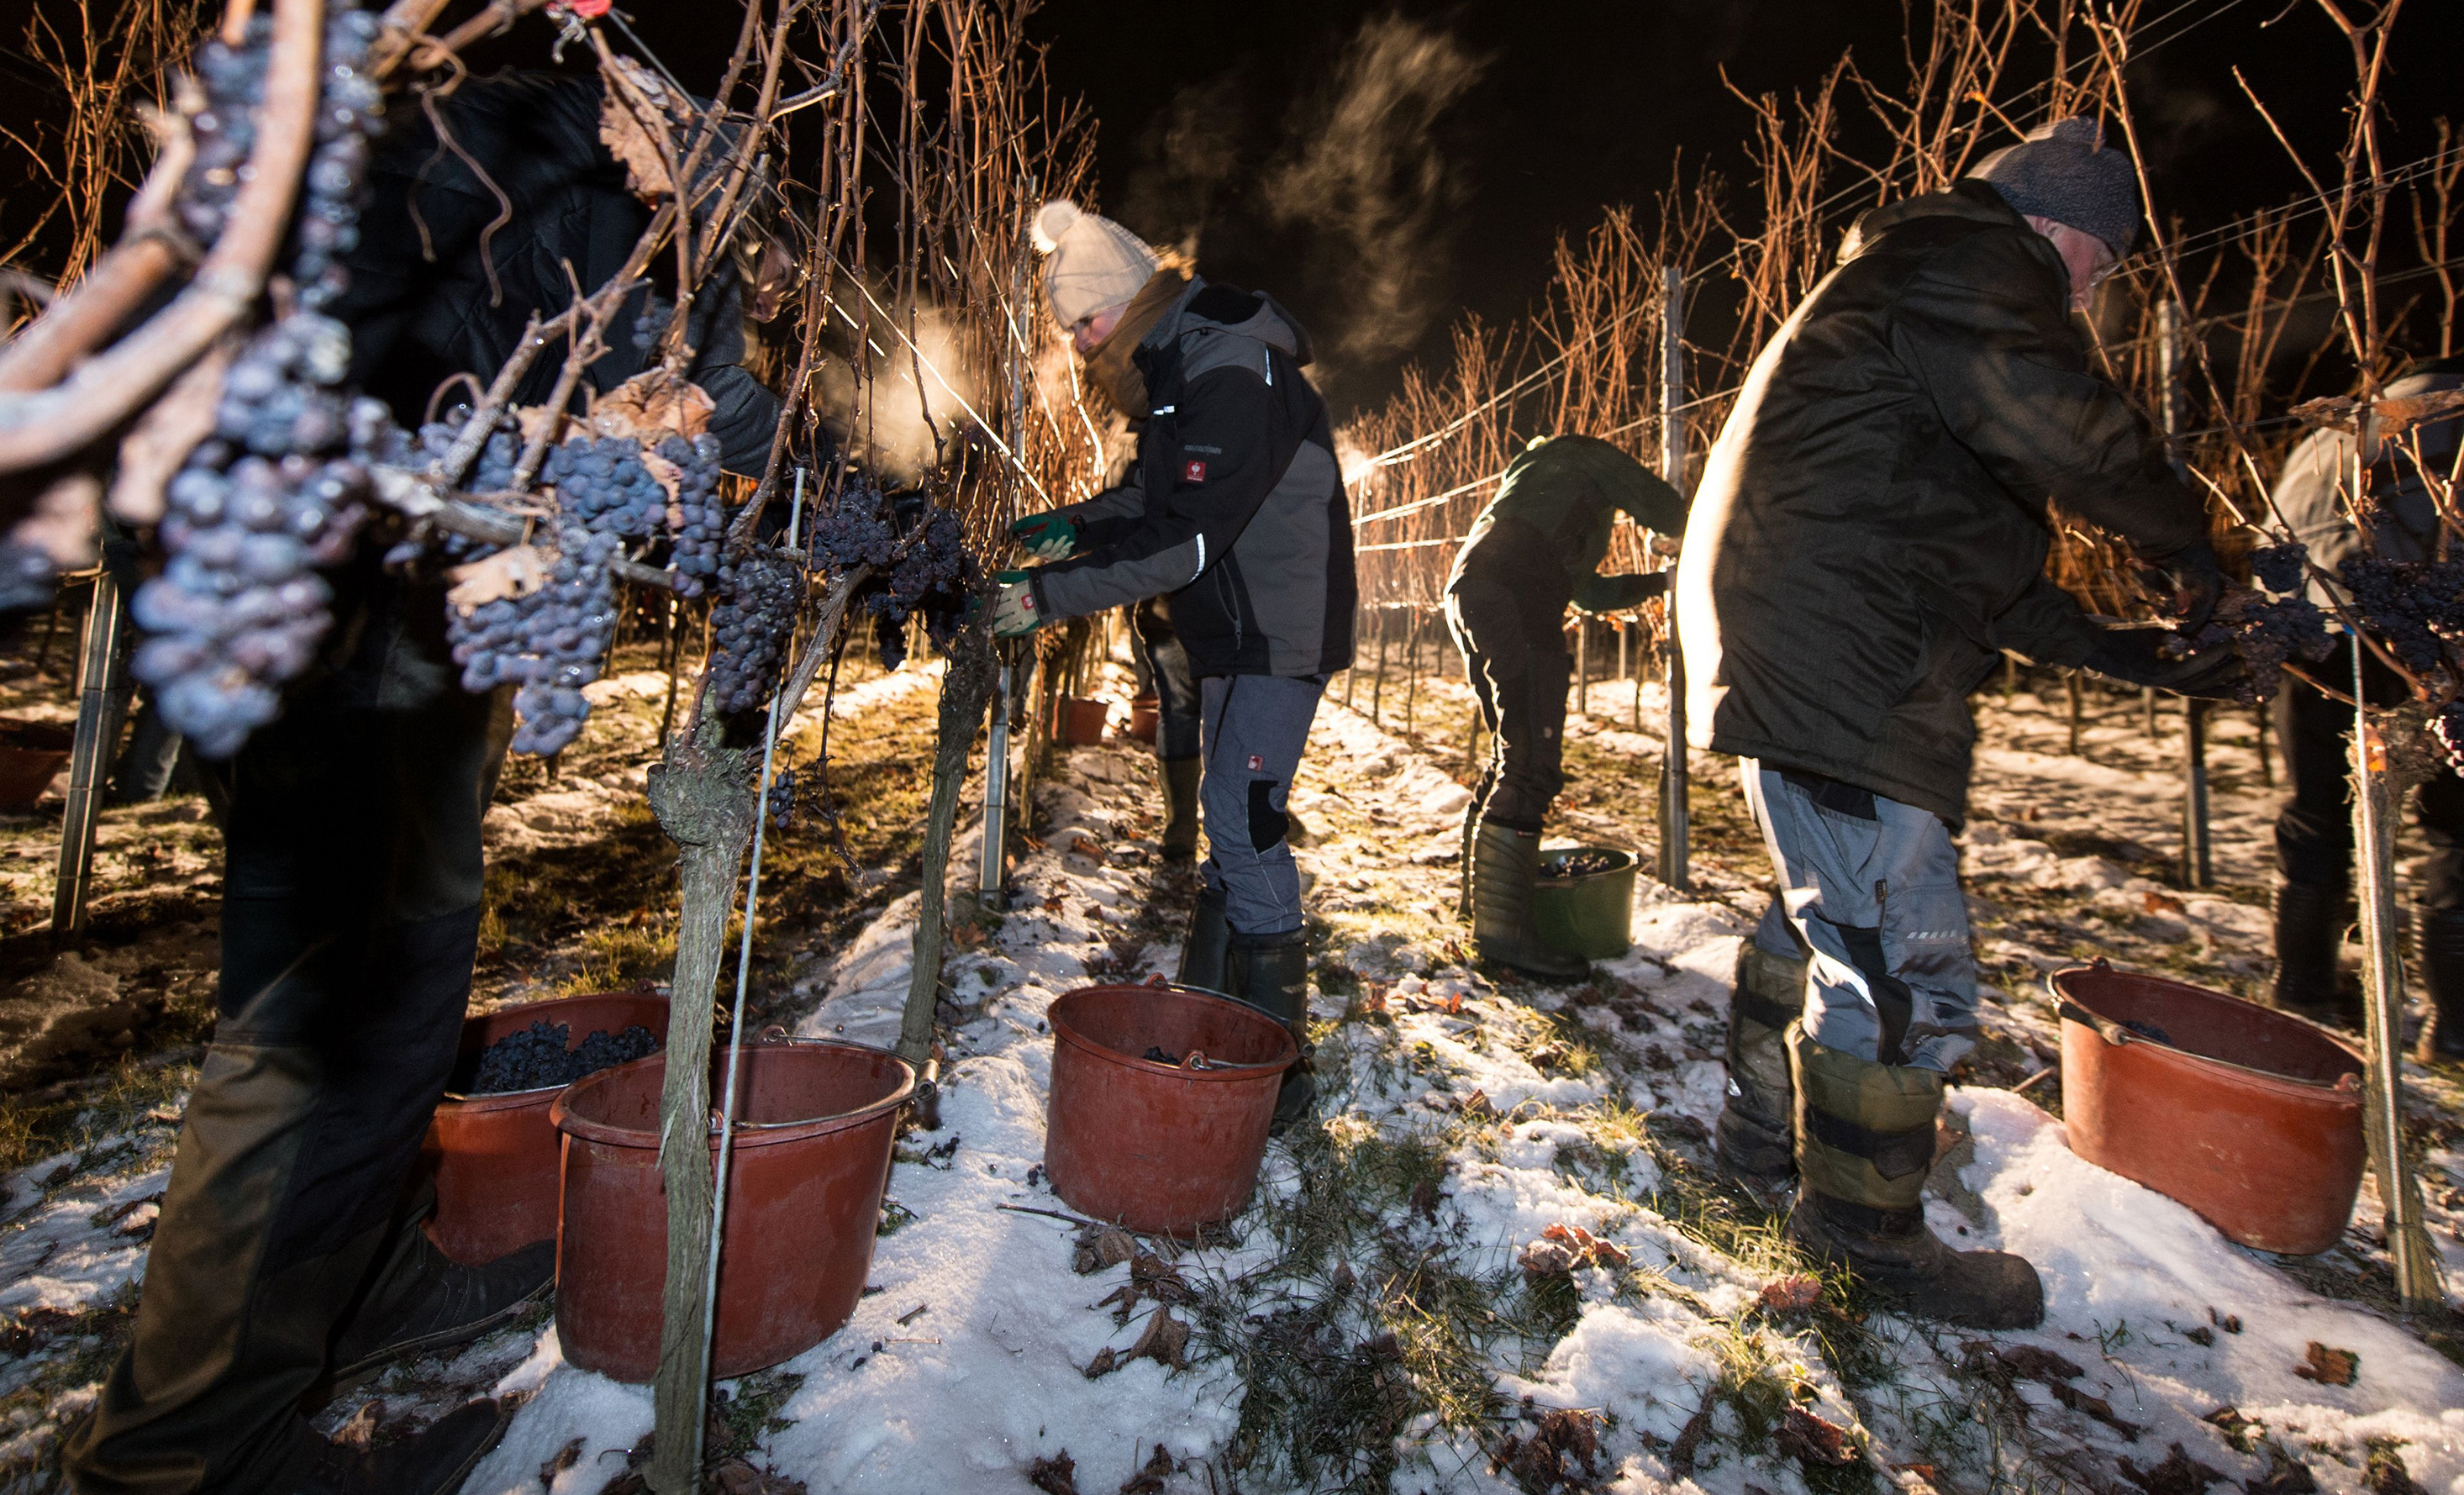 Making ice wine requires the grape to be picked and pressed at below-freezing temperatures, like in this vineyard in southern Germany. So, only a few places in the world — mainly Canada and Germany — produce it. But now, vineyards in frigid parts of the U.S., are making their own ice wine, giving Americans a chance to buy domestically produced bottles.